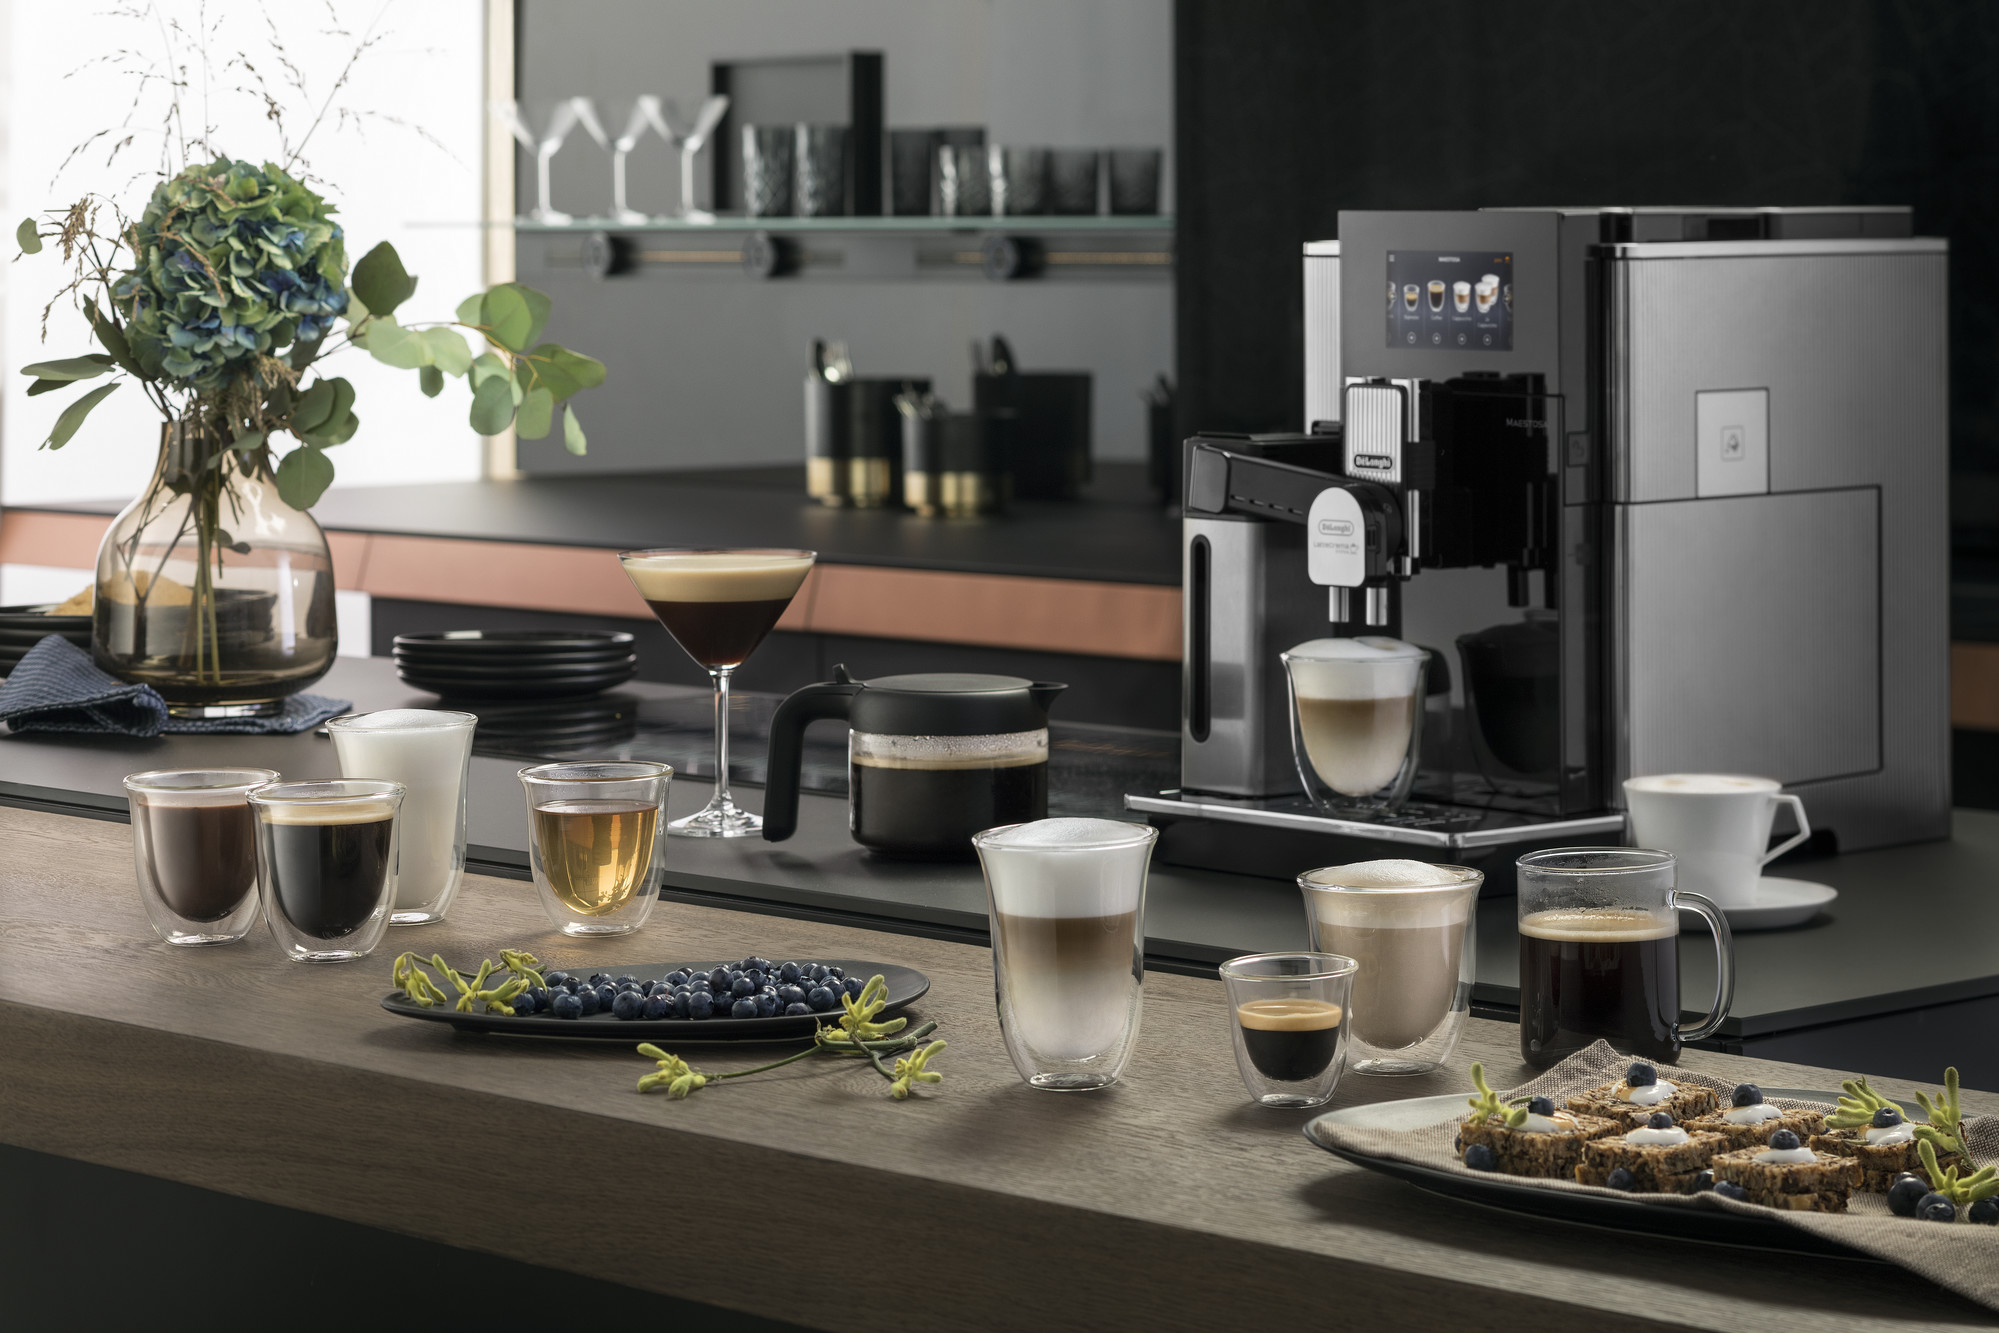 De'Longhi Maestosa Coffee Machine and a variety of drinks